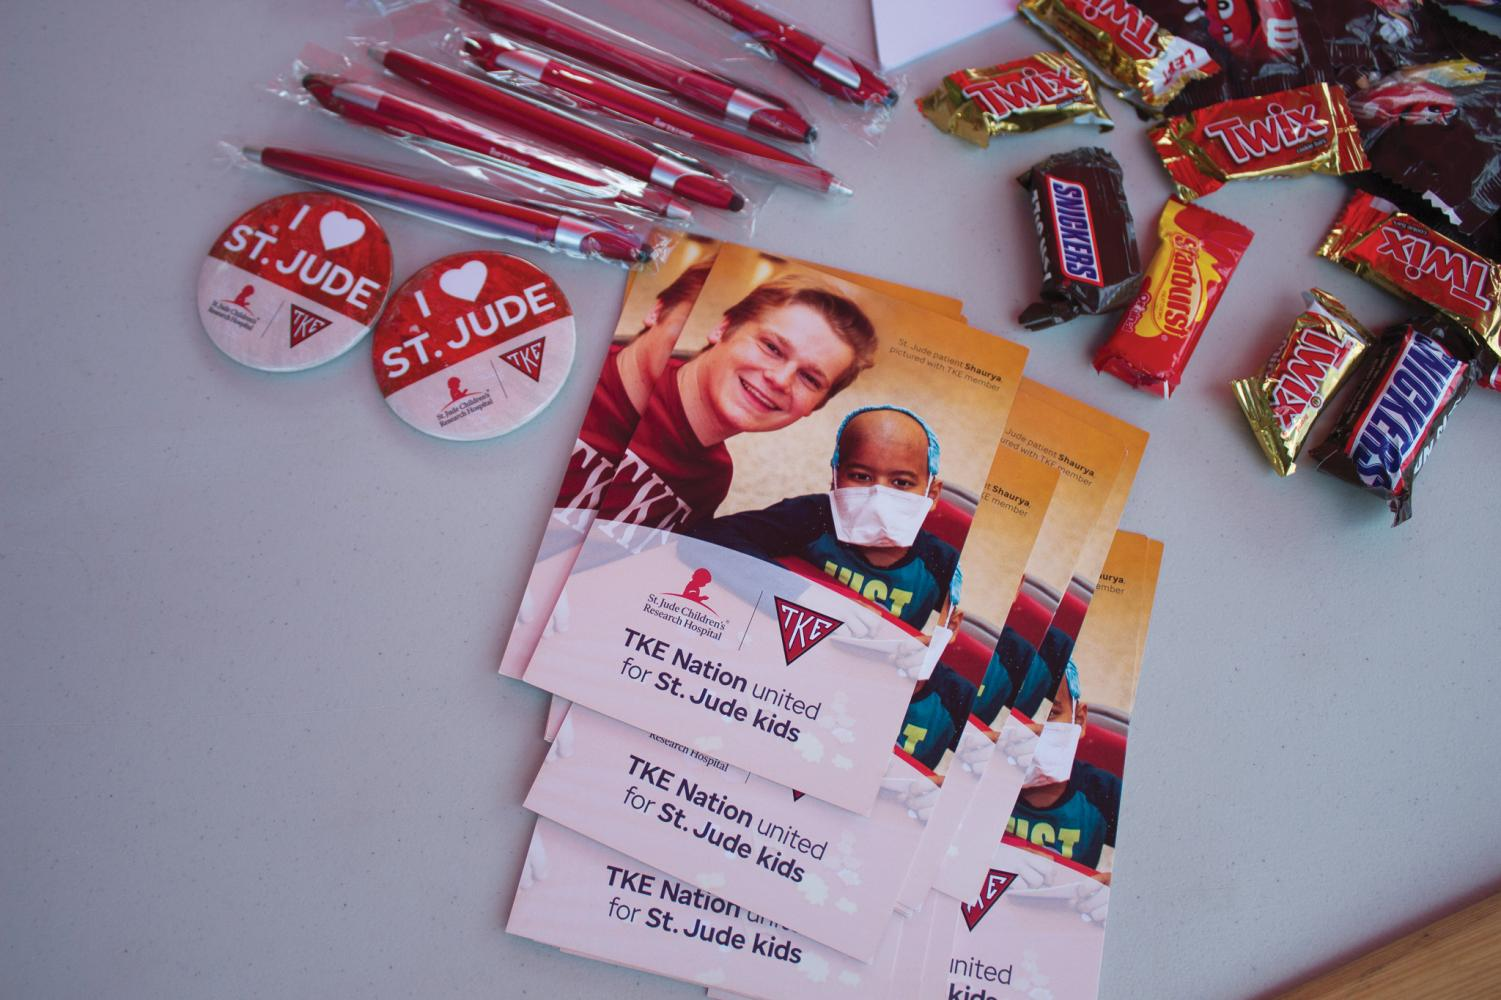 Information and candy given out at the blood drive.